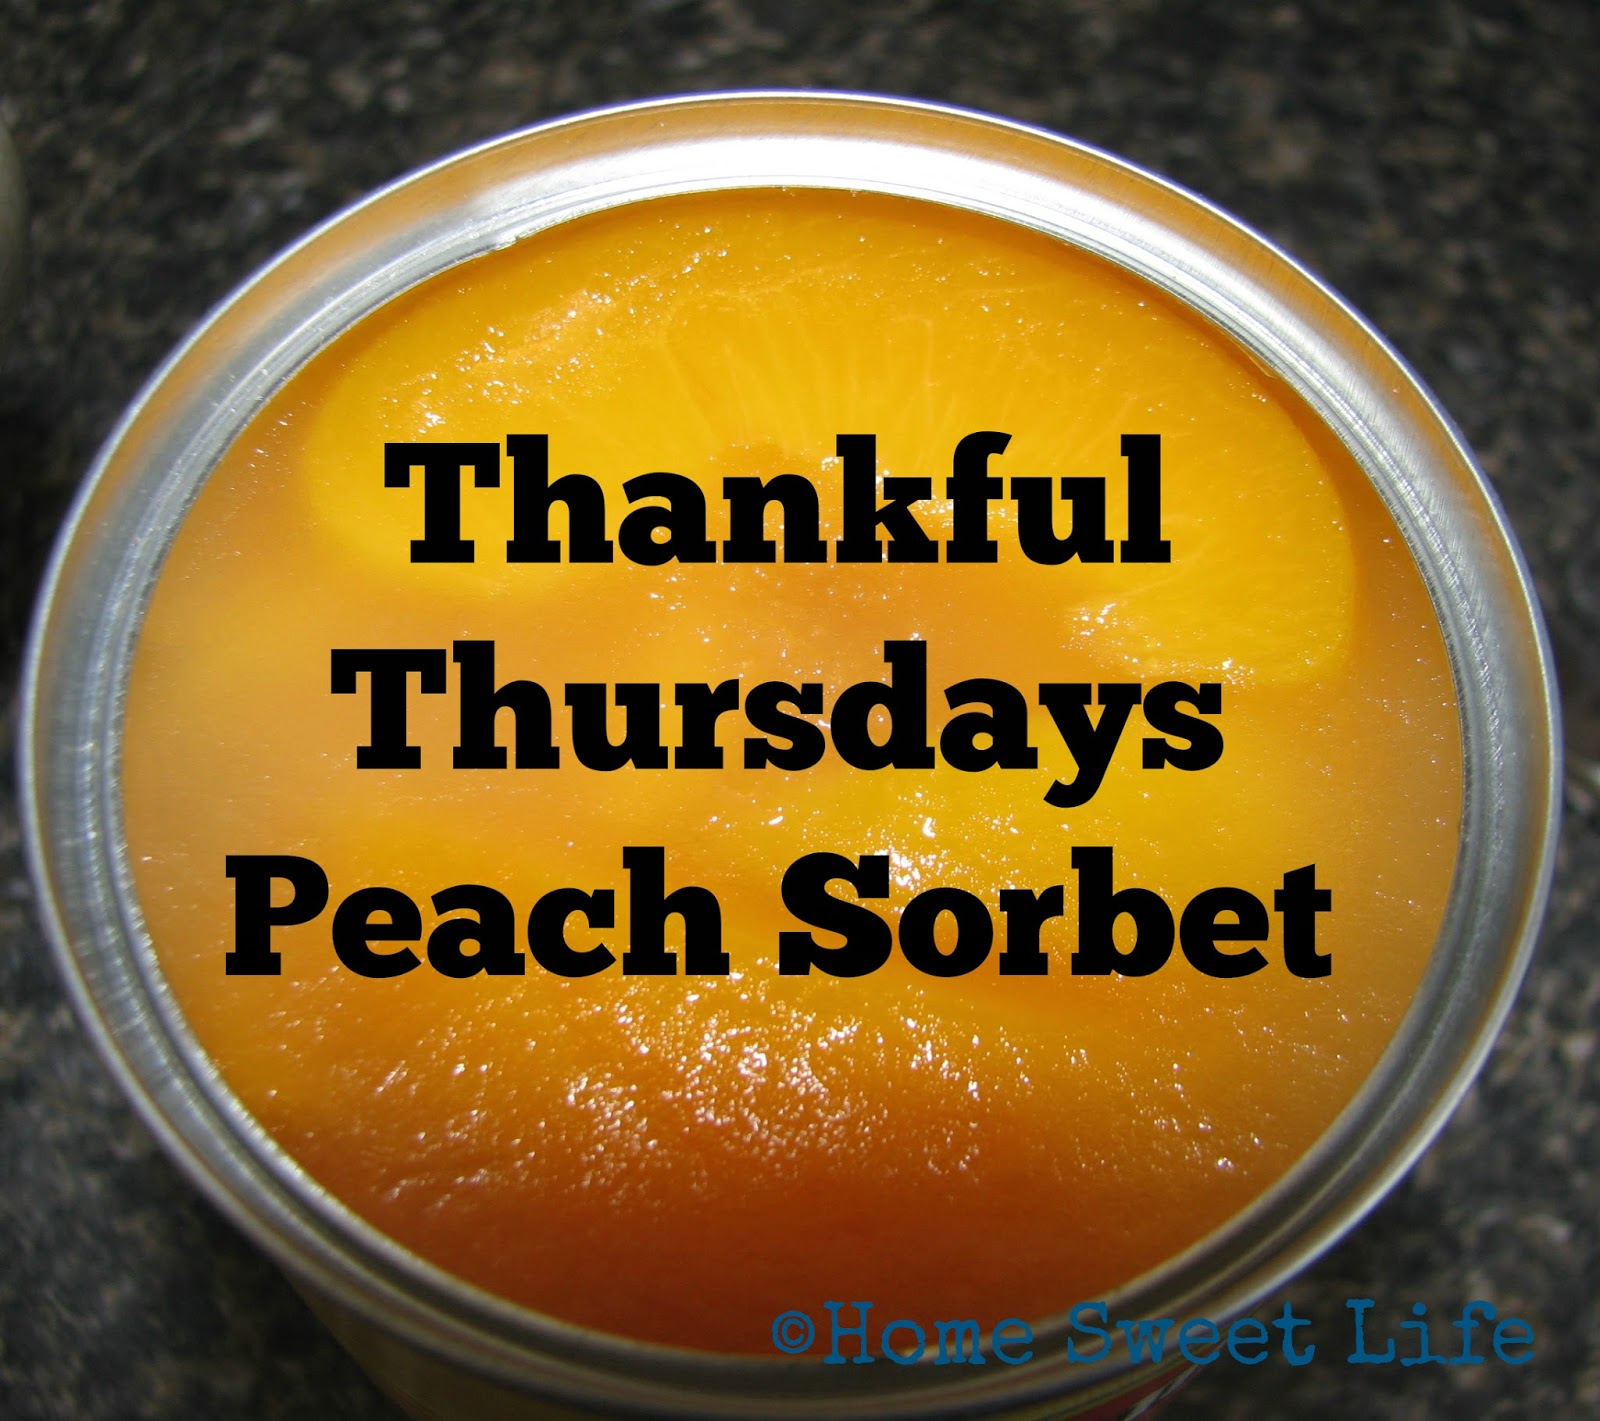 Thankful Thursdays - Peach Sorbet